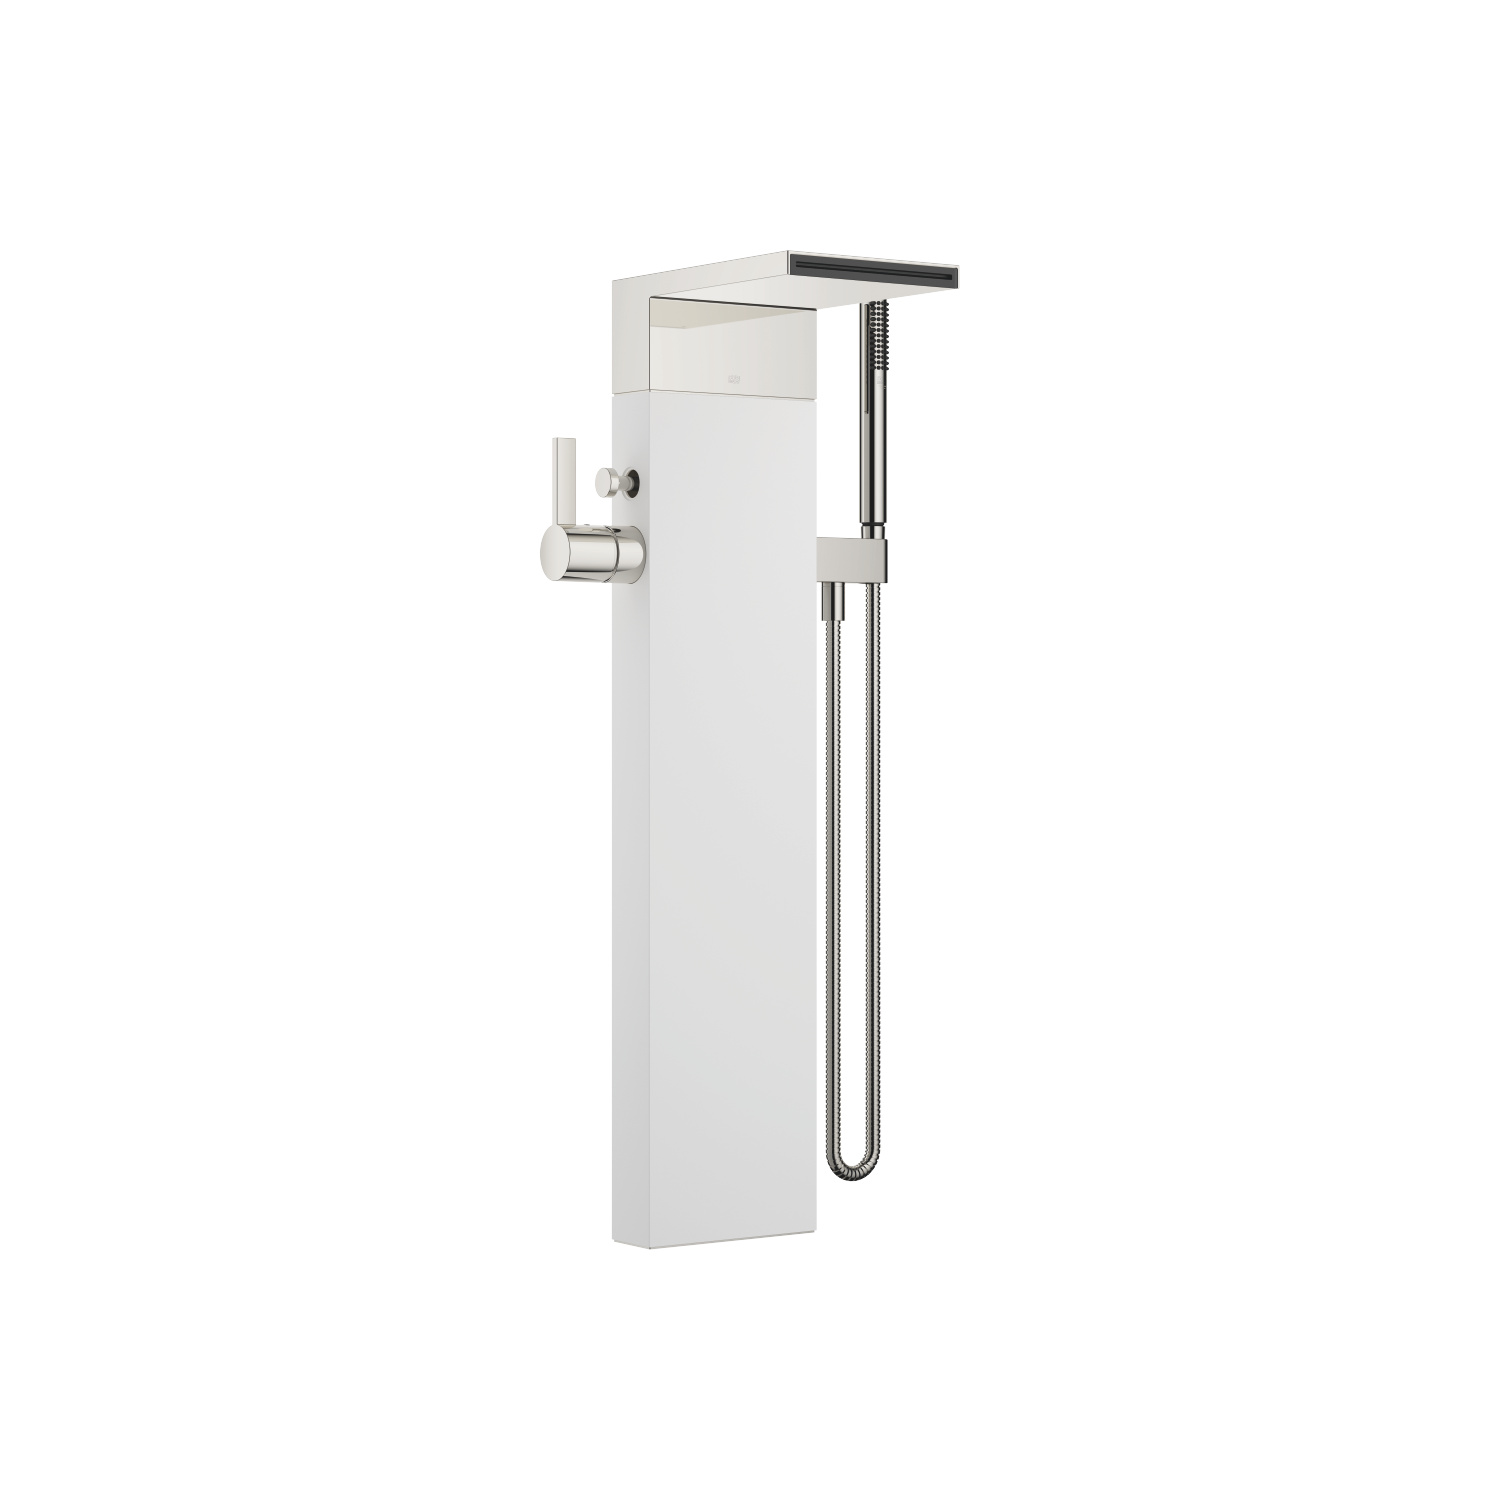 Single-lever bath mixer with cascade spout for free-standing assembly with hand shower set - platinum